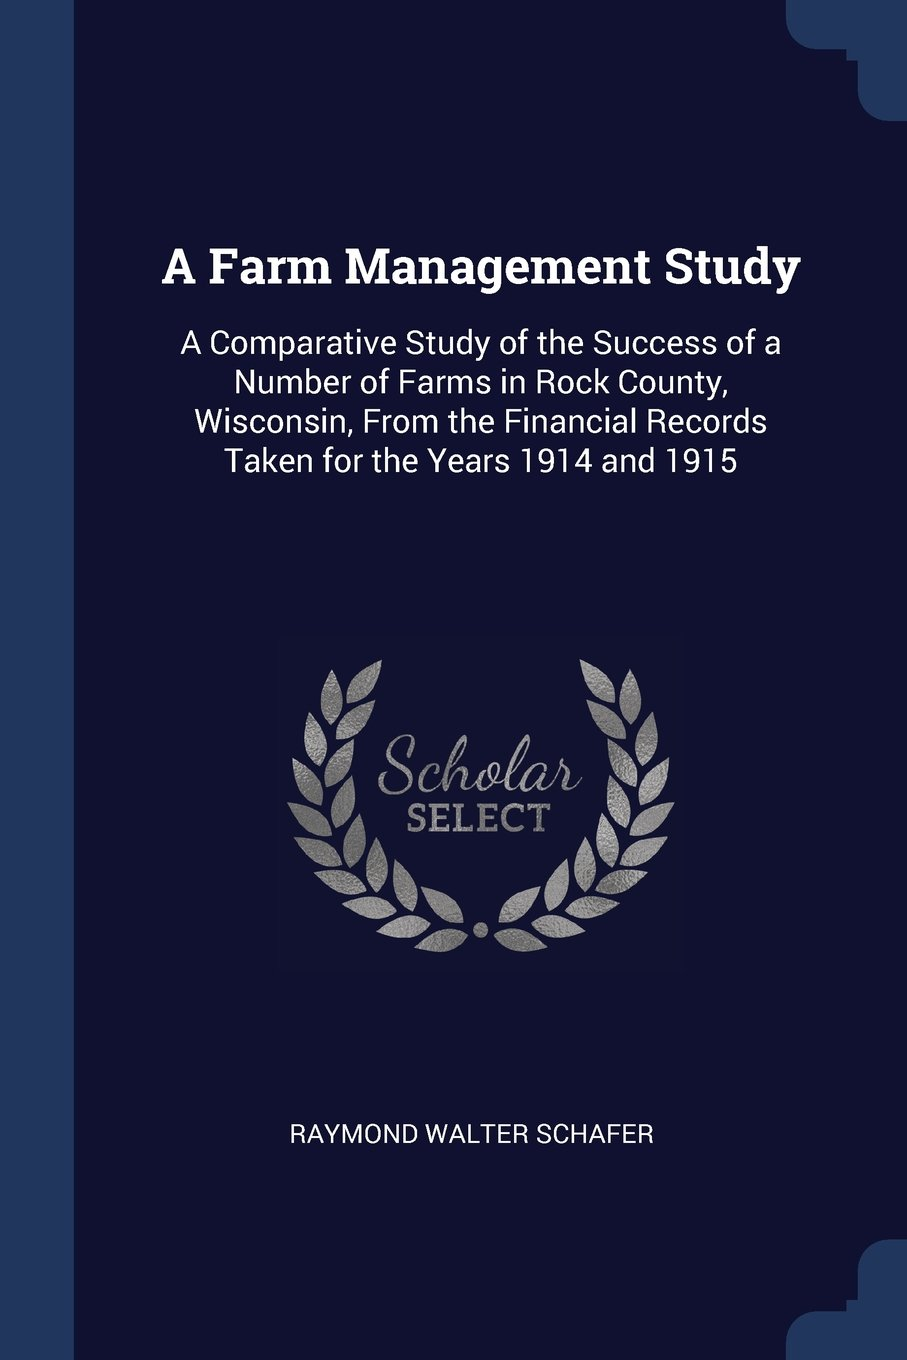 Download A Farm Management Study: A Comparative Study of the Success of a Number of Farms in Rock County, Wisconsin, From the Financial Records Taken for the Years 1914 and 1915 ebook